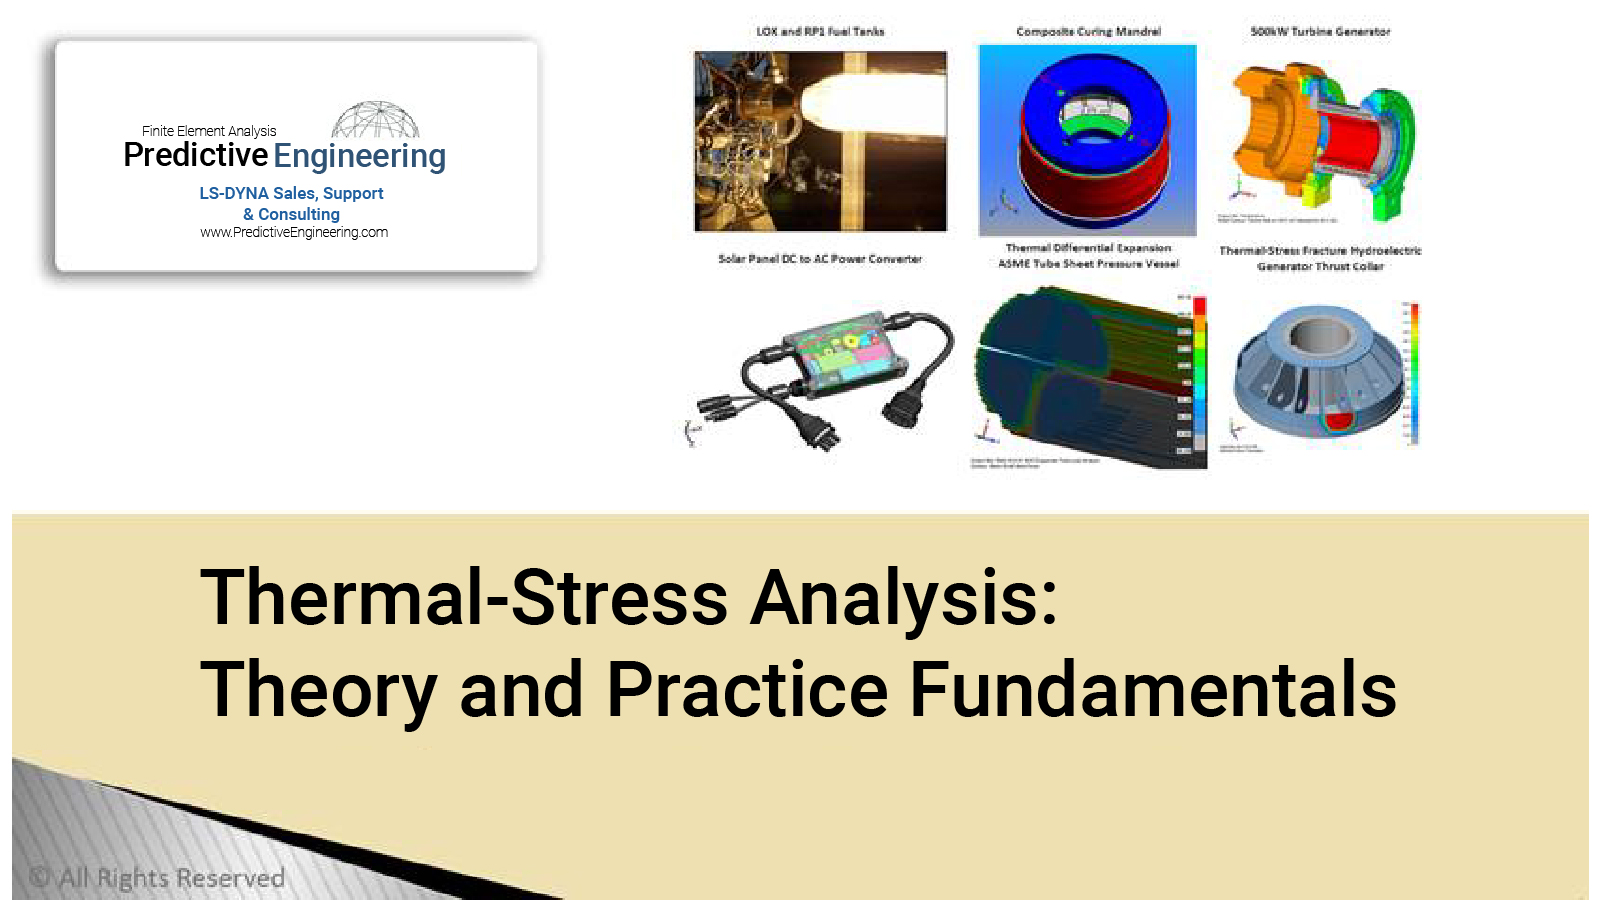 Thermal-Stress Analysis - Predictive Engineering White Paper - FEA Consulting Service